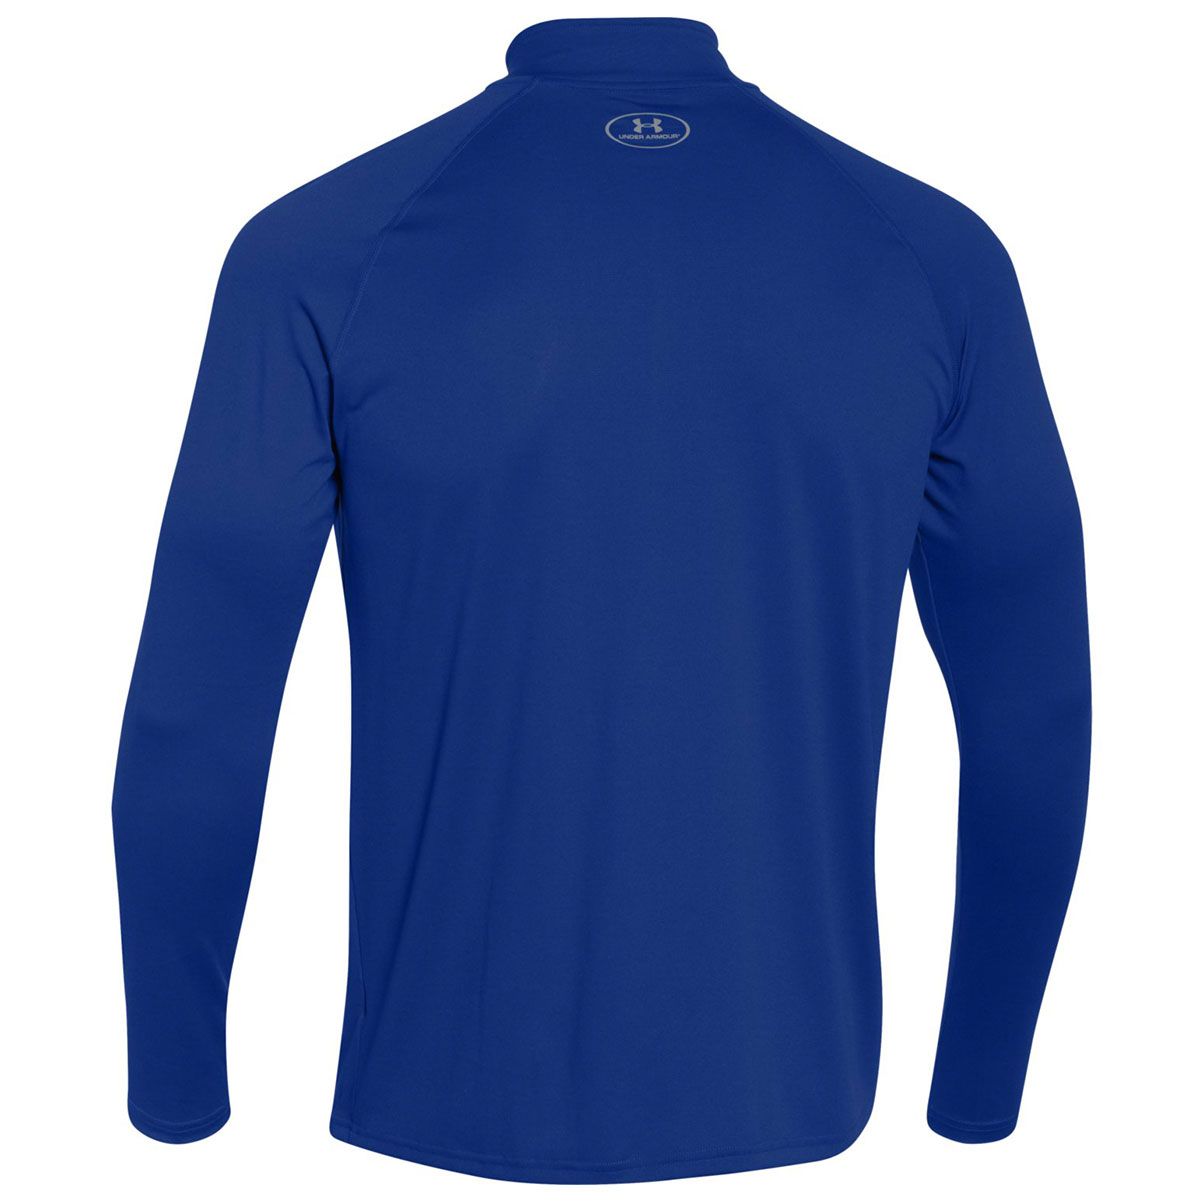 Under-Armour-Mens-UA-Tech-1-4-Zip-Long-Sleeve-Top-Workout-Layer-27-OFF-RRP thumbnail 78